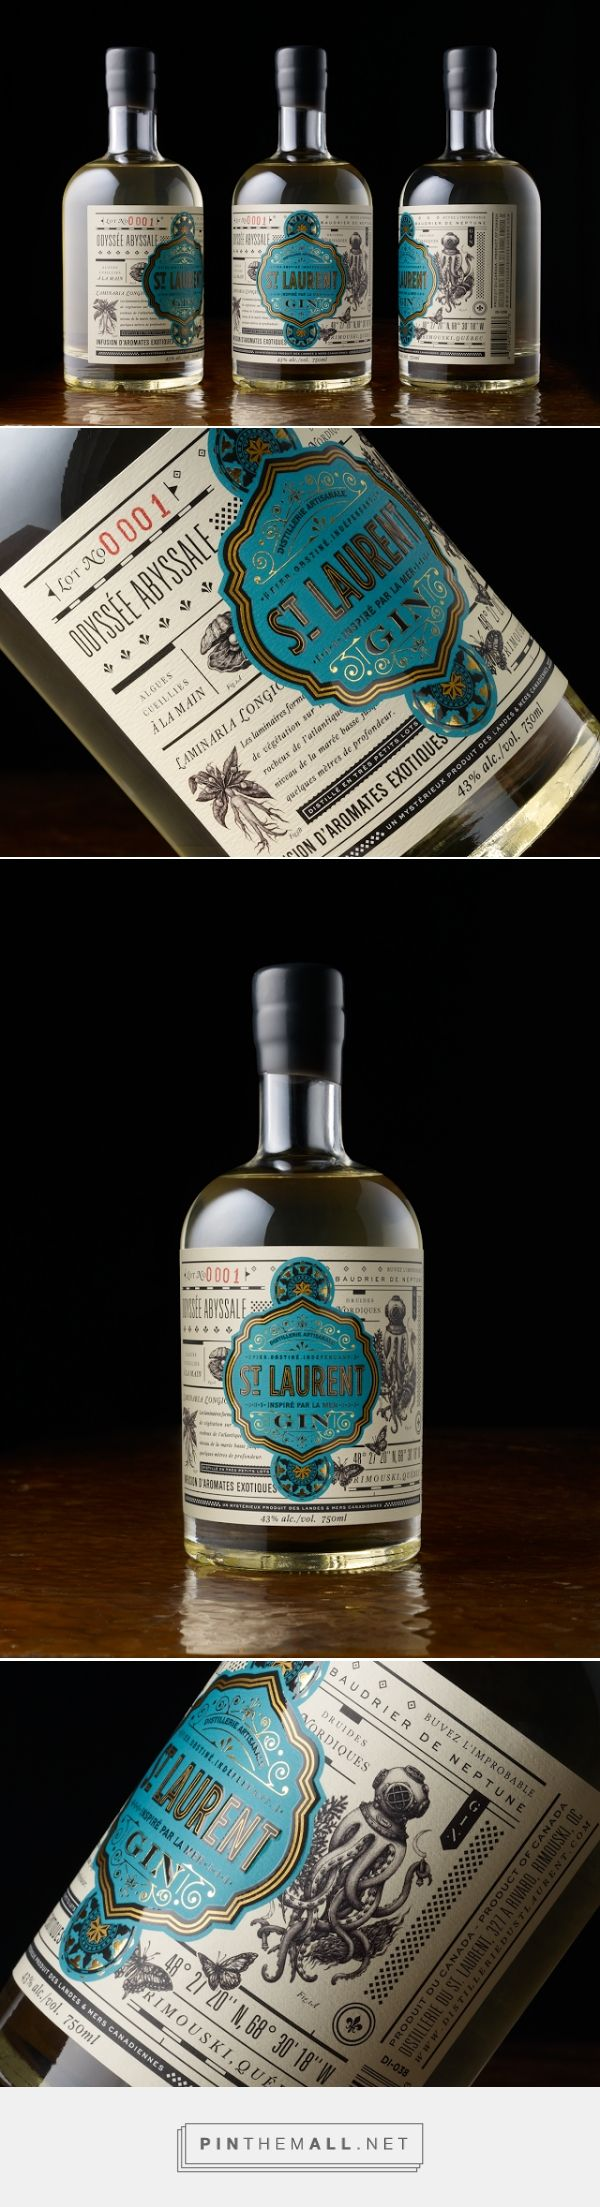 St. Laurent Gin Packaging designed by Chad Michael Studio​ - http://www.packagingoftheworld.com/2015/10/st-laurent-gin.html